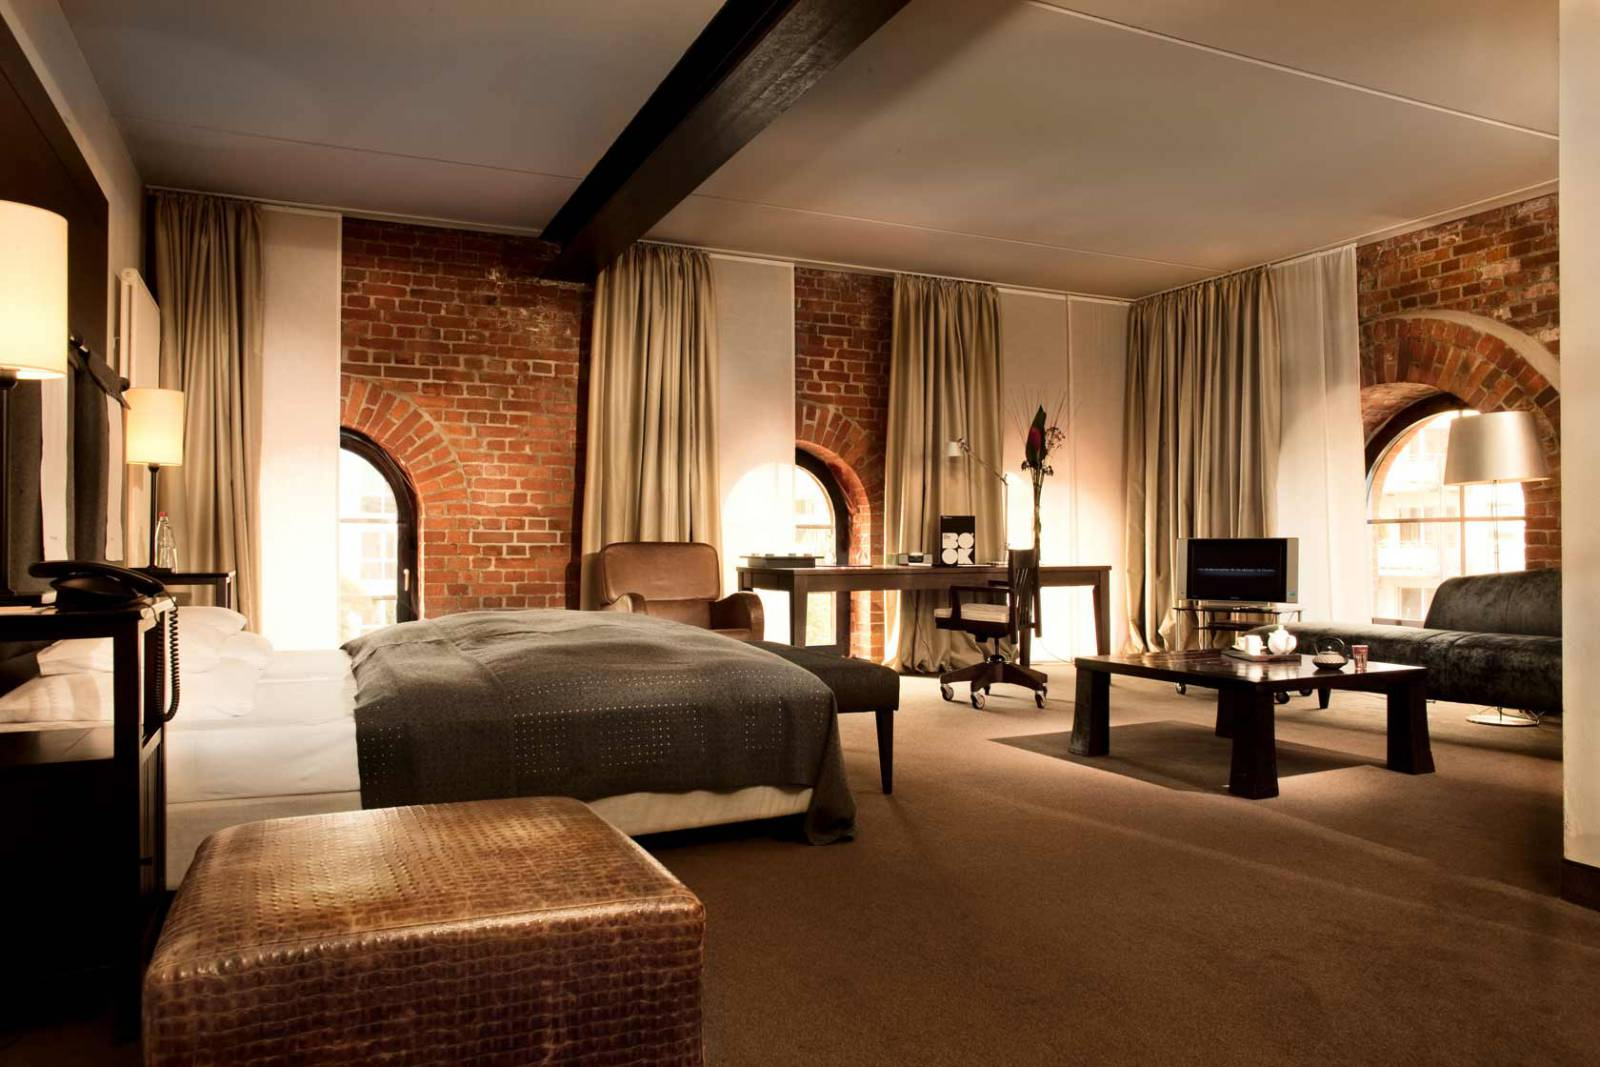 Un hotel in stile loft ad amburgo in the mood for design for Suite hotel hamburg